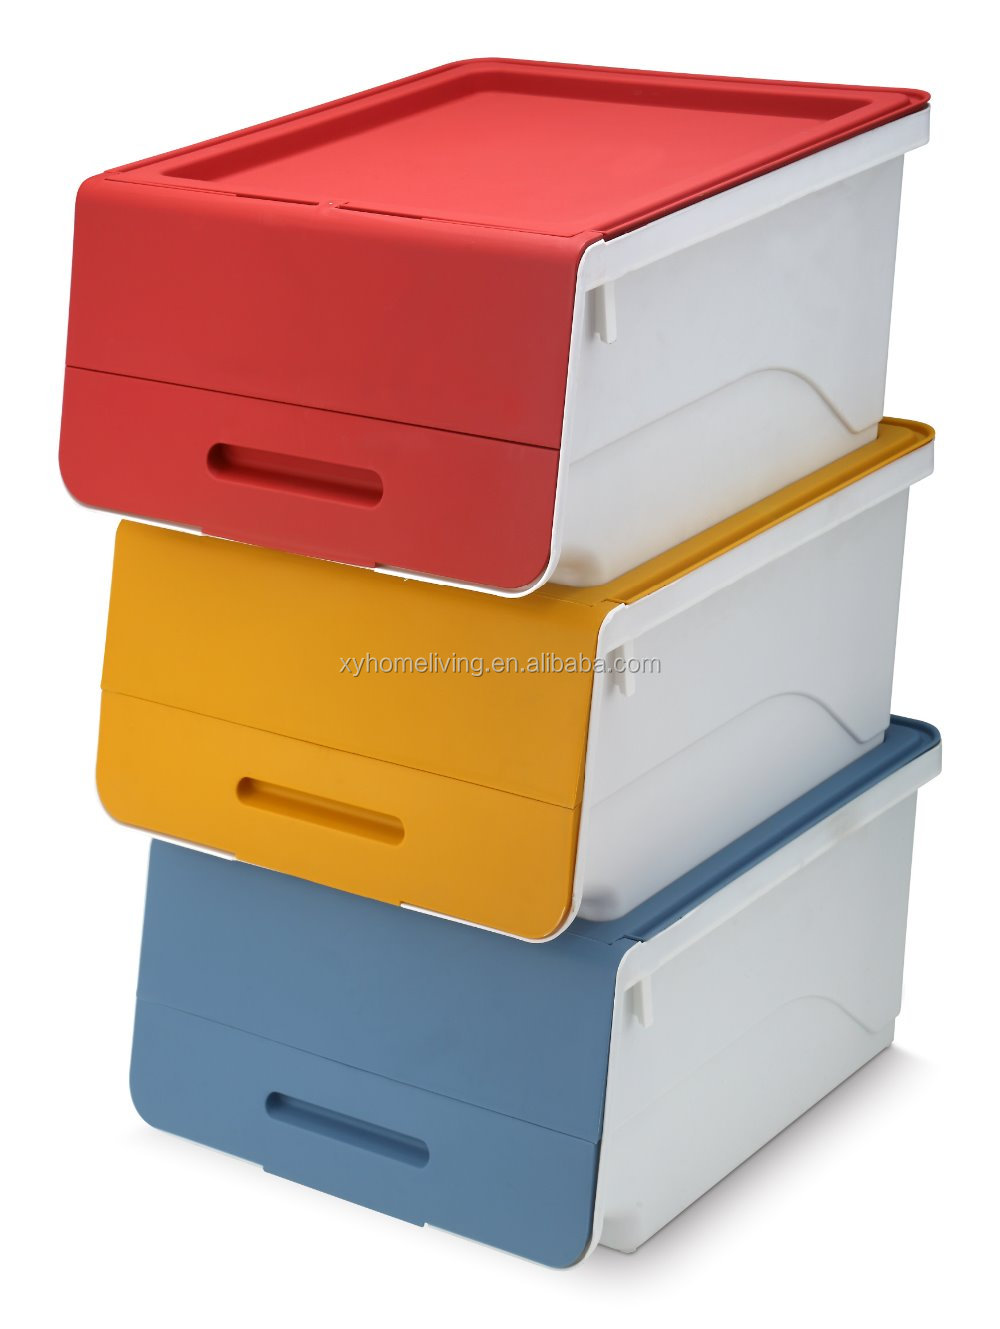 Self Opening Front Storage Box For Clothes   Buy Self Opening Box,Storage  Box With Open Front,Clothes Storage Box Product On Alibaba.com